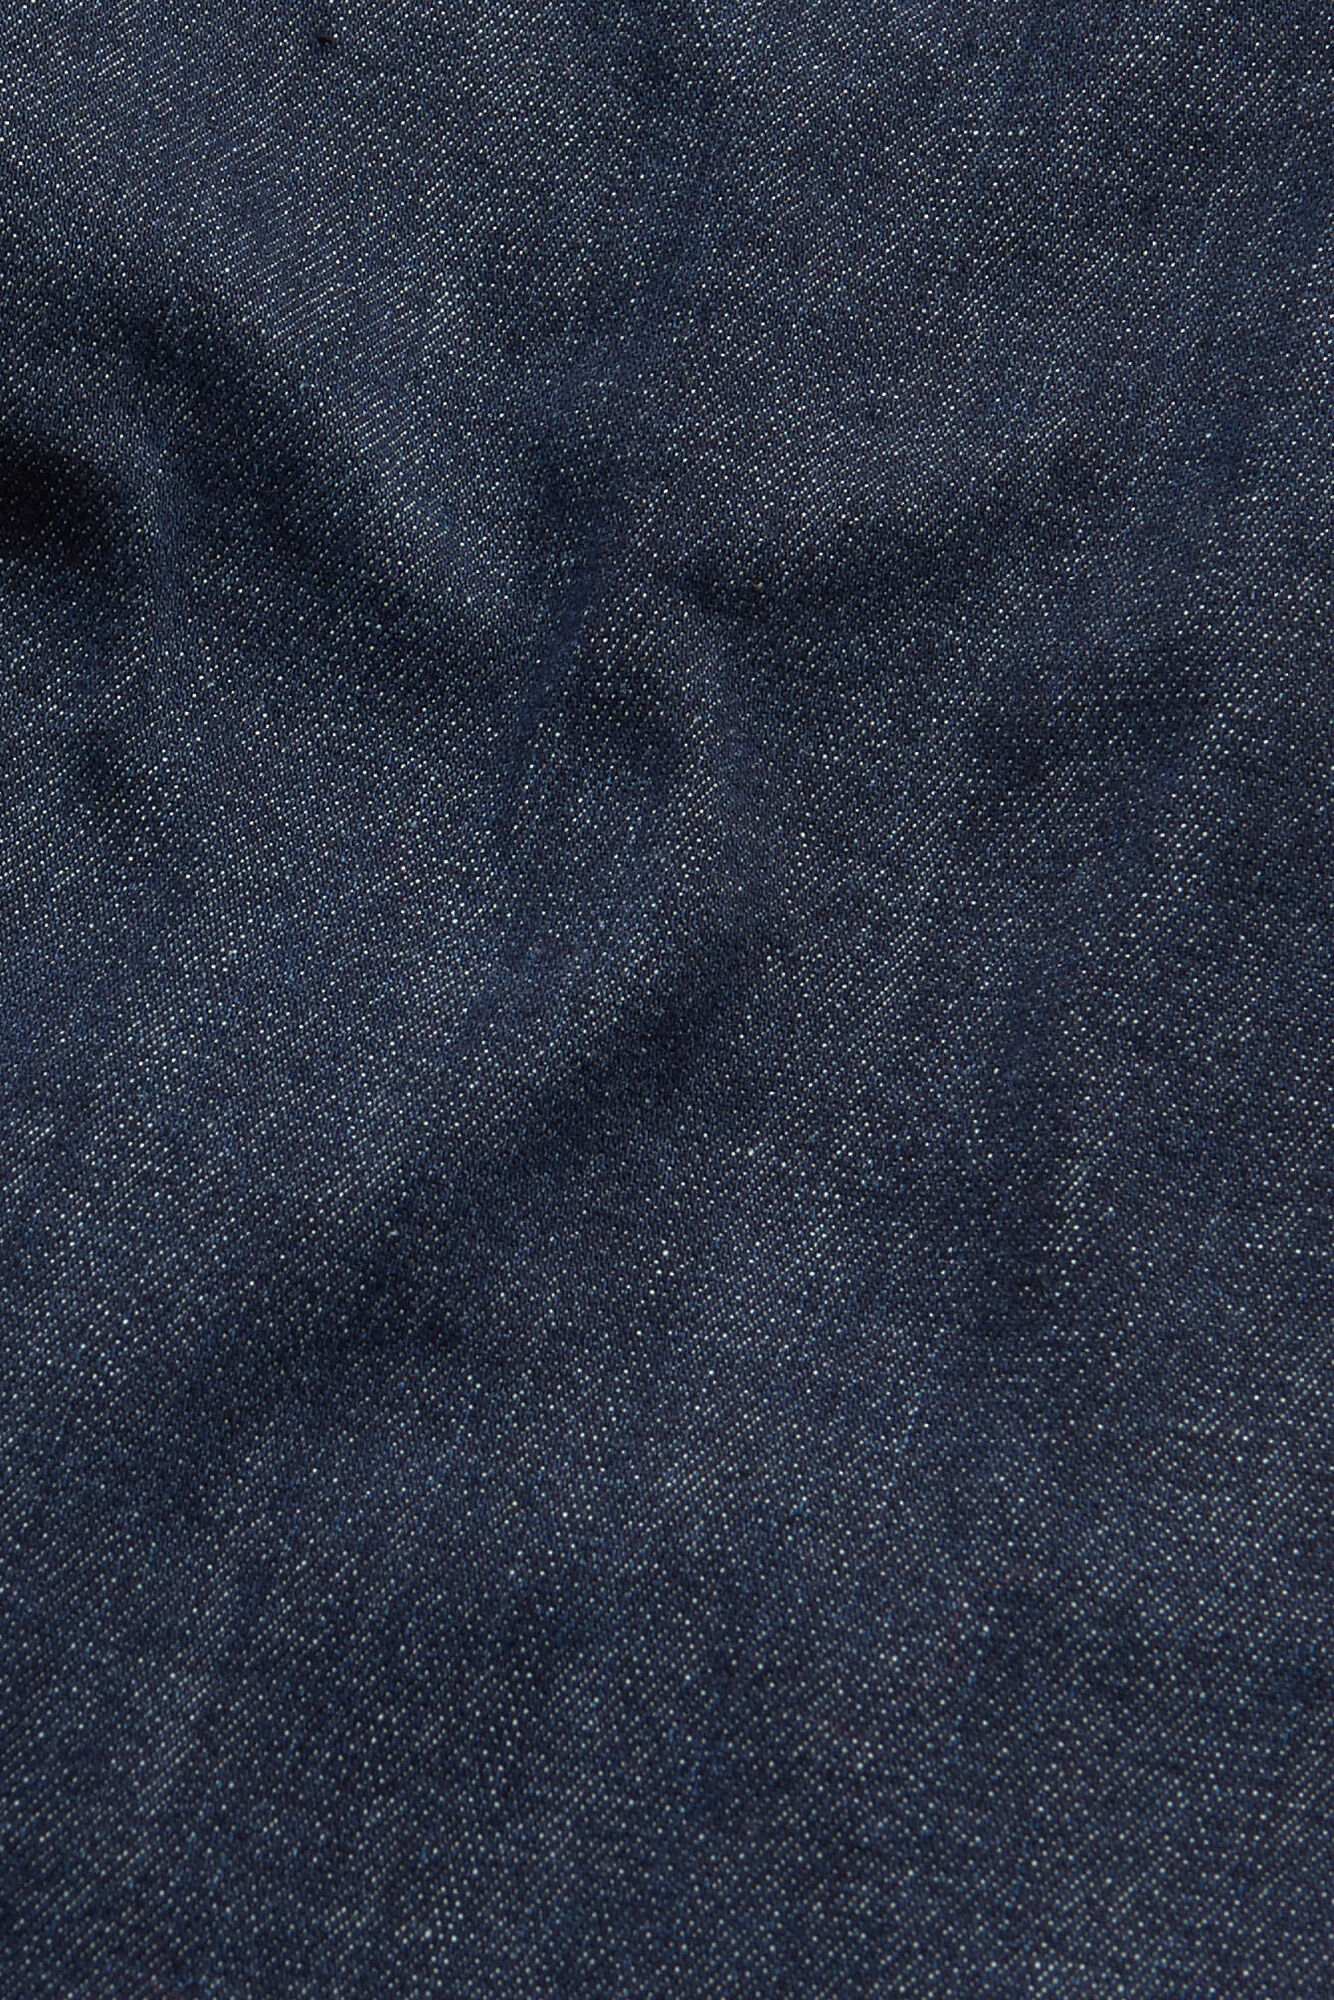 PANDY REGULAR, D Basic Denim, hi-res